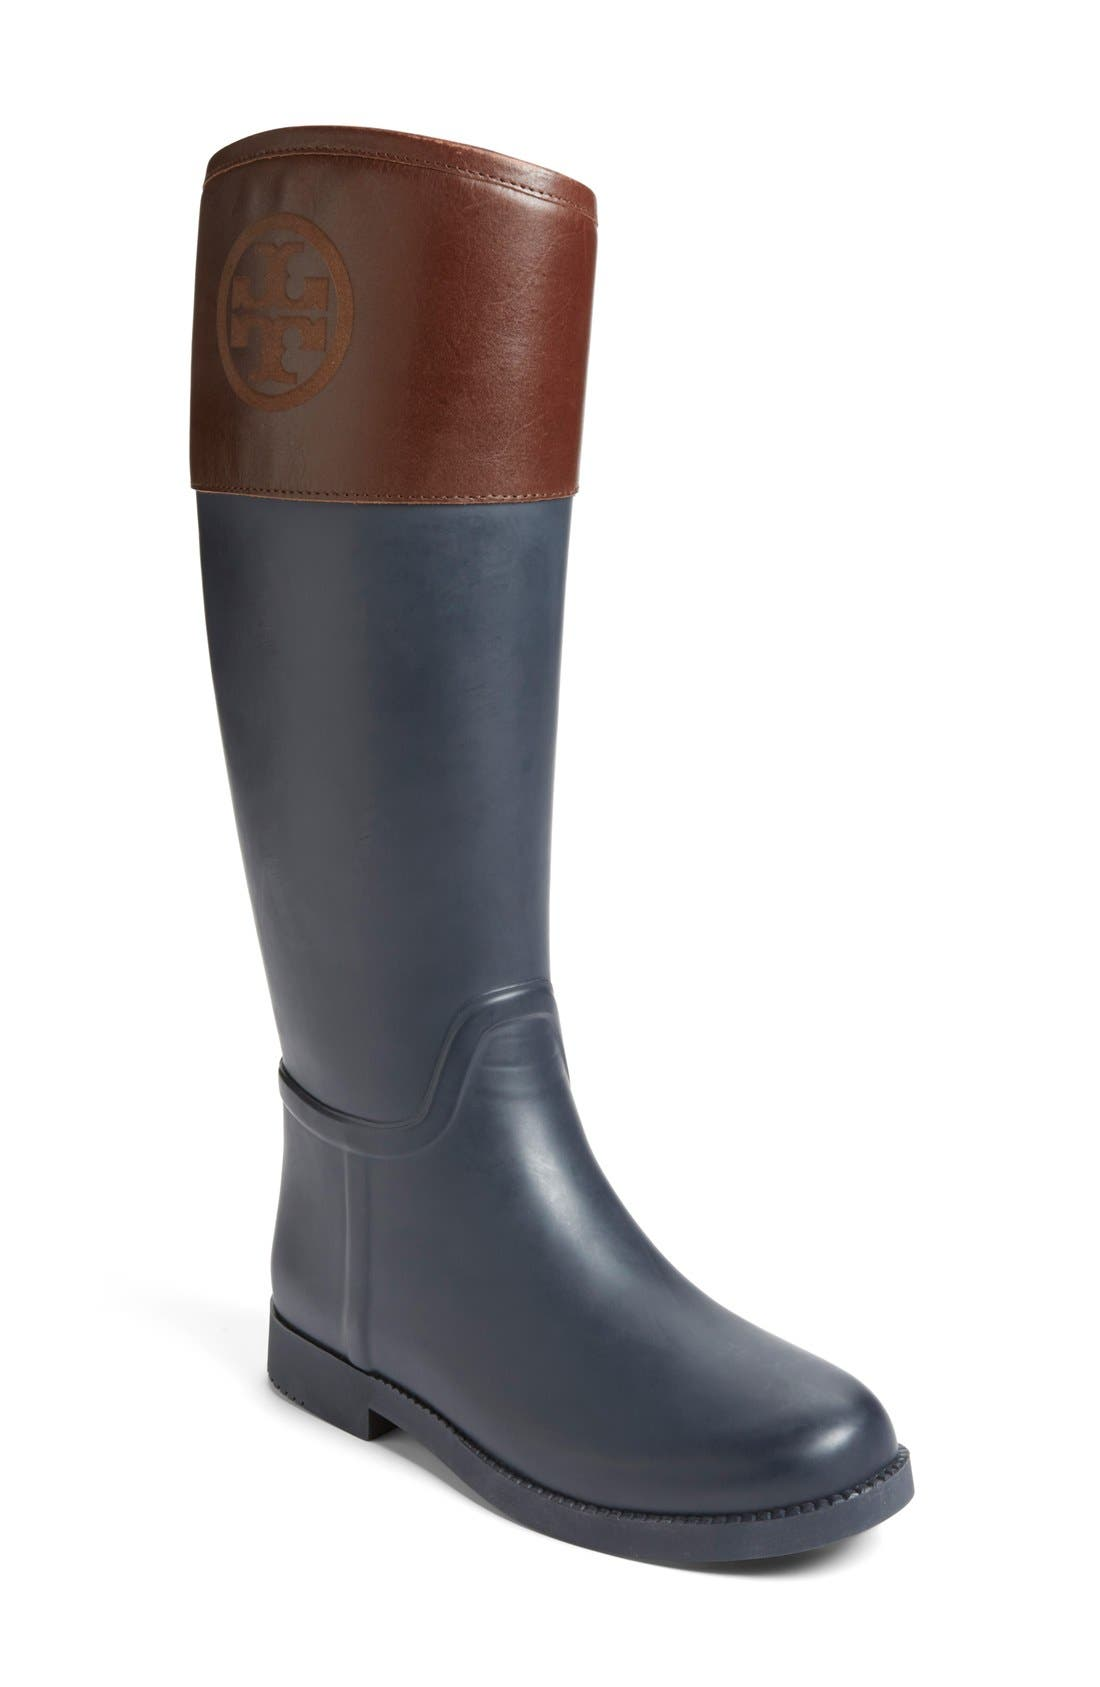 Alternate Image 1 Selected - Tory Burch 'Classic' Rain Boot (Women) (Nordstrom Exclusive)